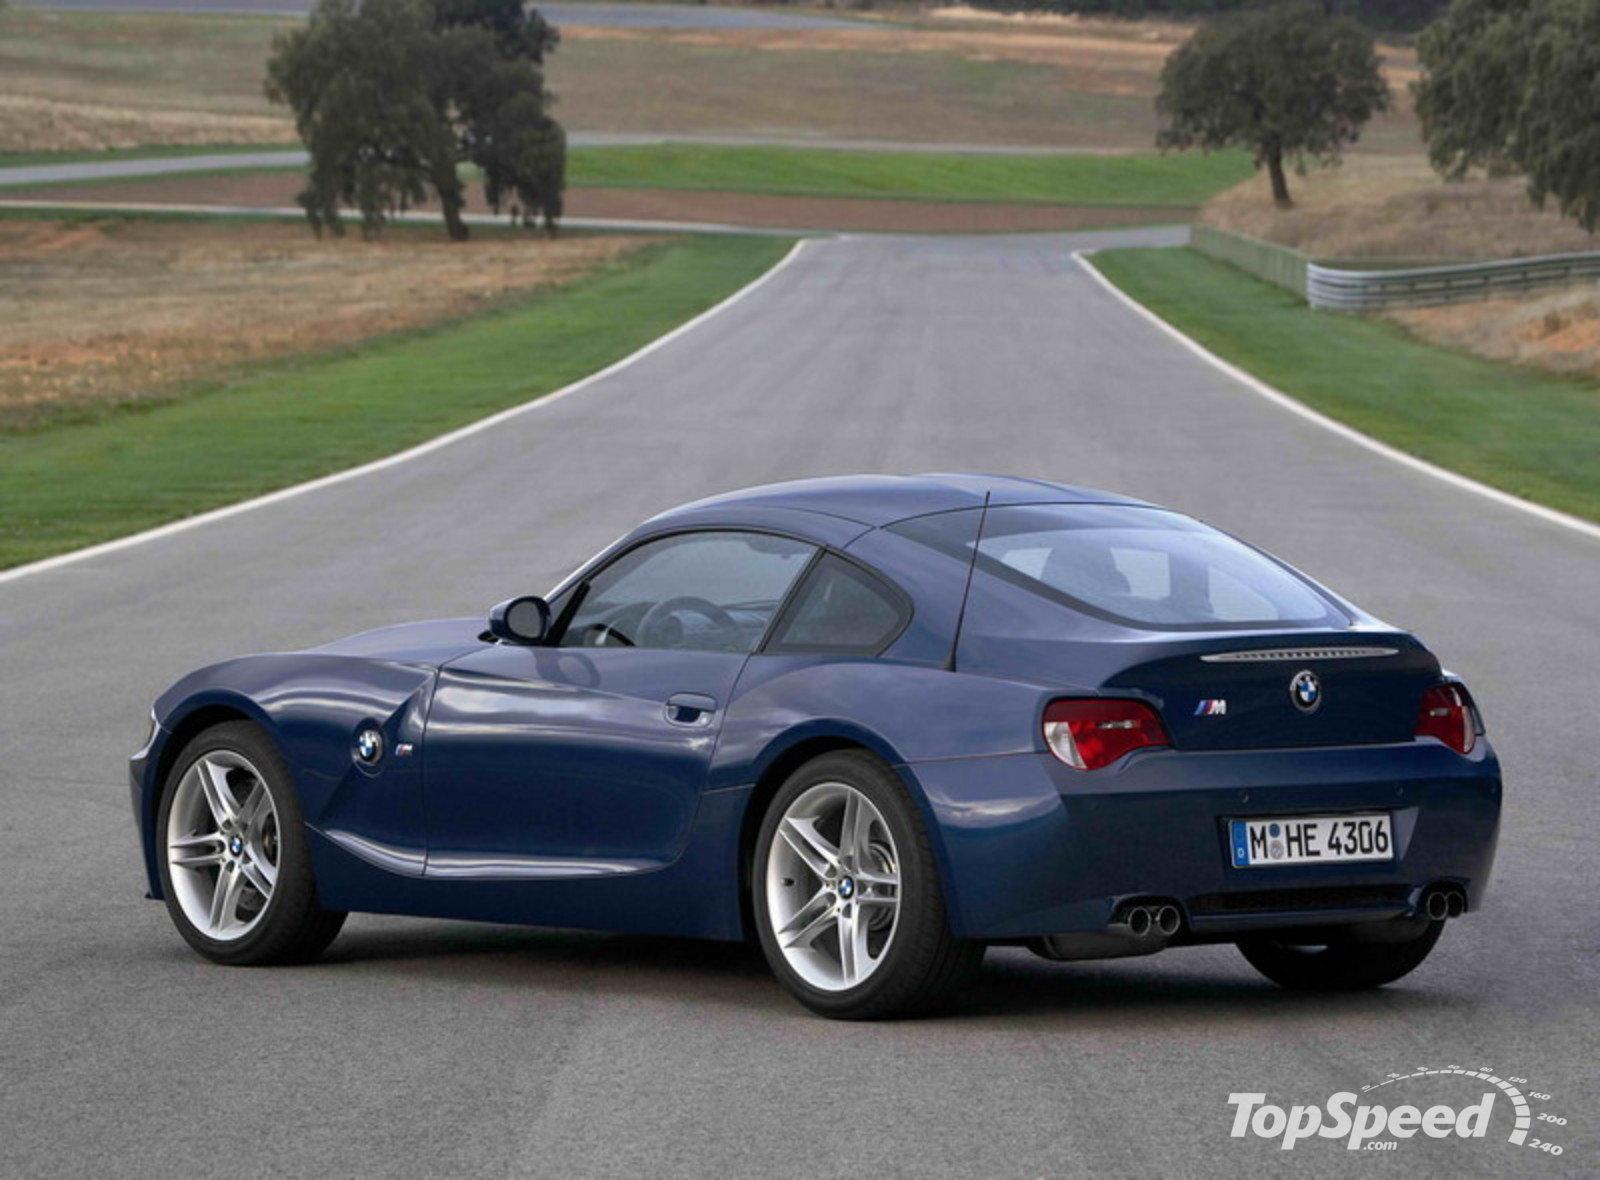 2007 Bmw Z4 M Coupe Pictures Information And Specs Auto Database Com